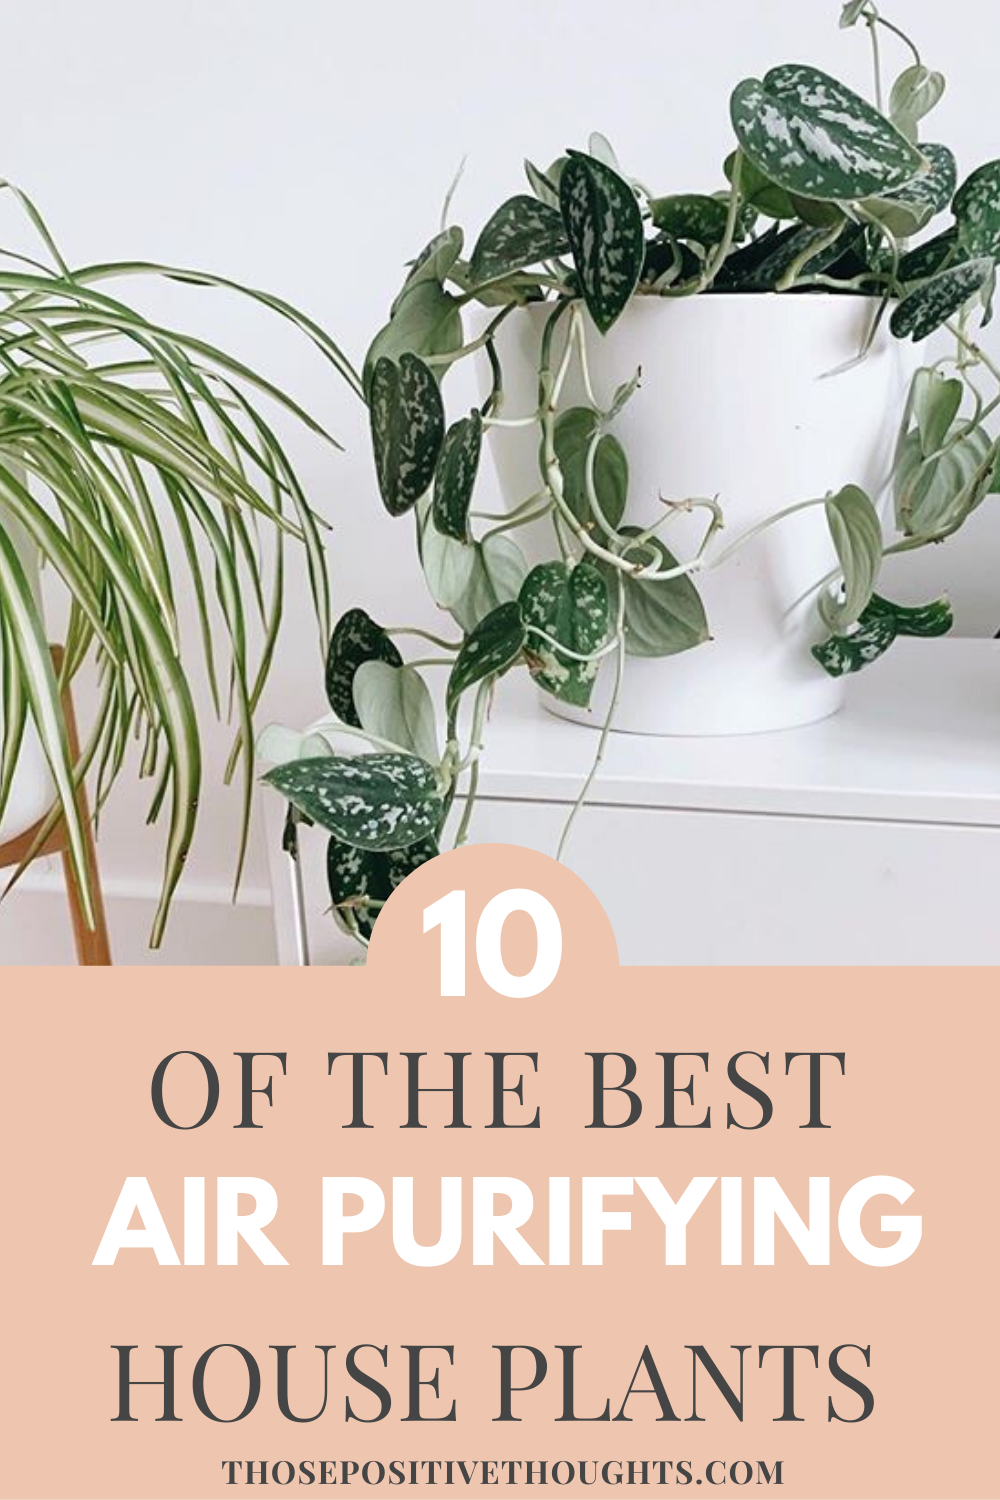 10 Best Air Purifying House Plants#air #house #plants #purifying#air #house #pla...,  #Air #House #pla #Plants #Plantsair #Purifying #purifyingair #purpleHousePlants